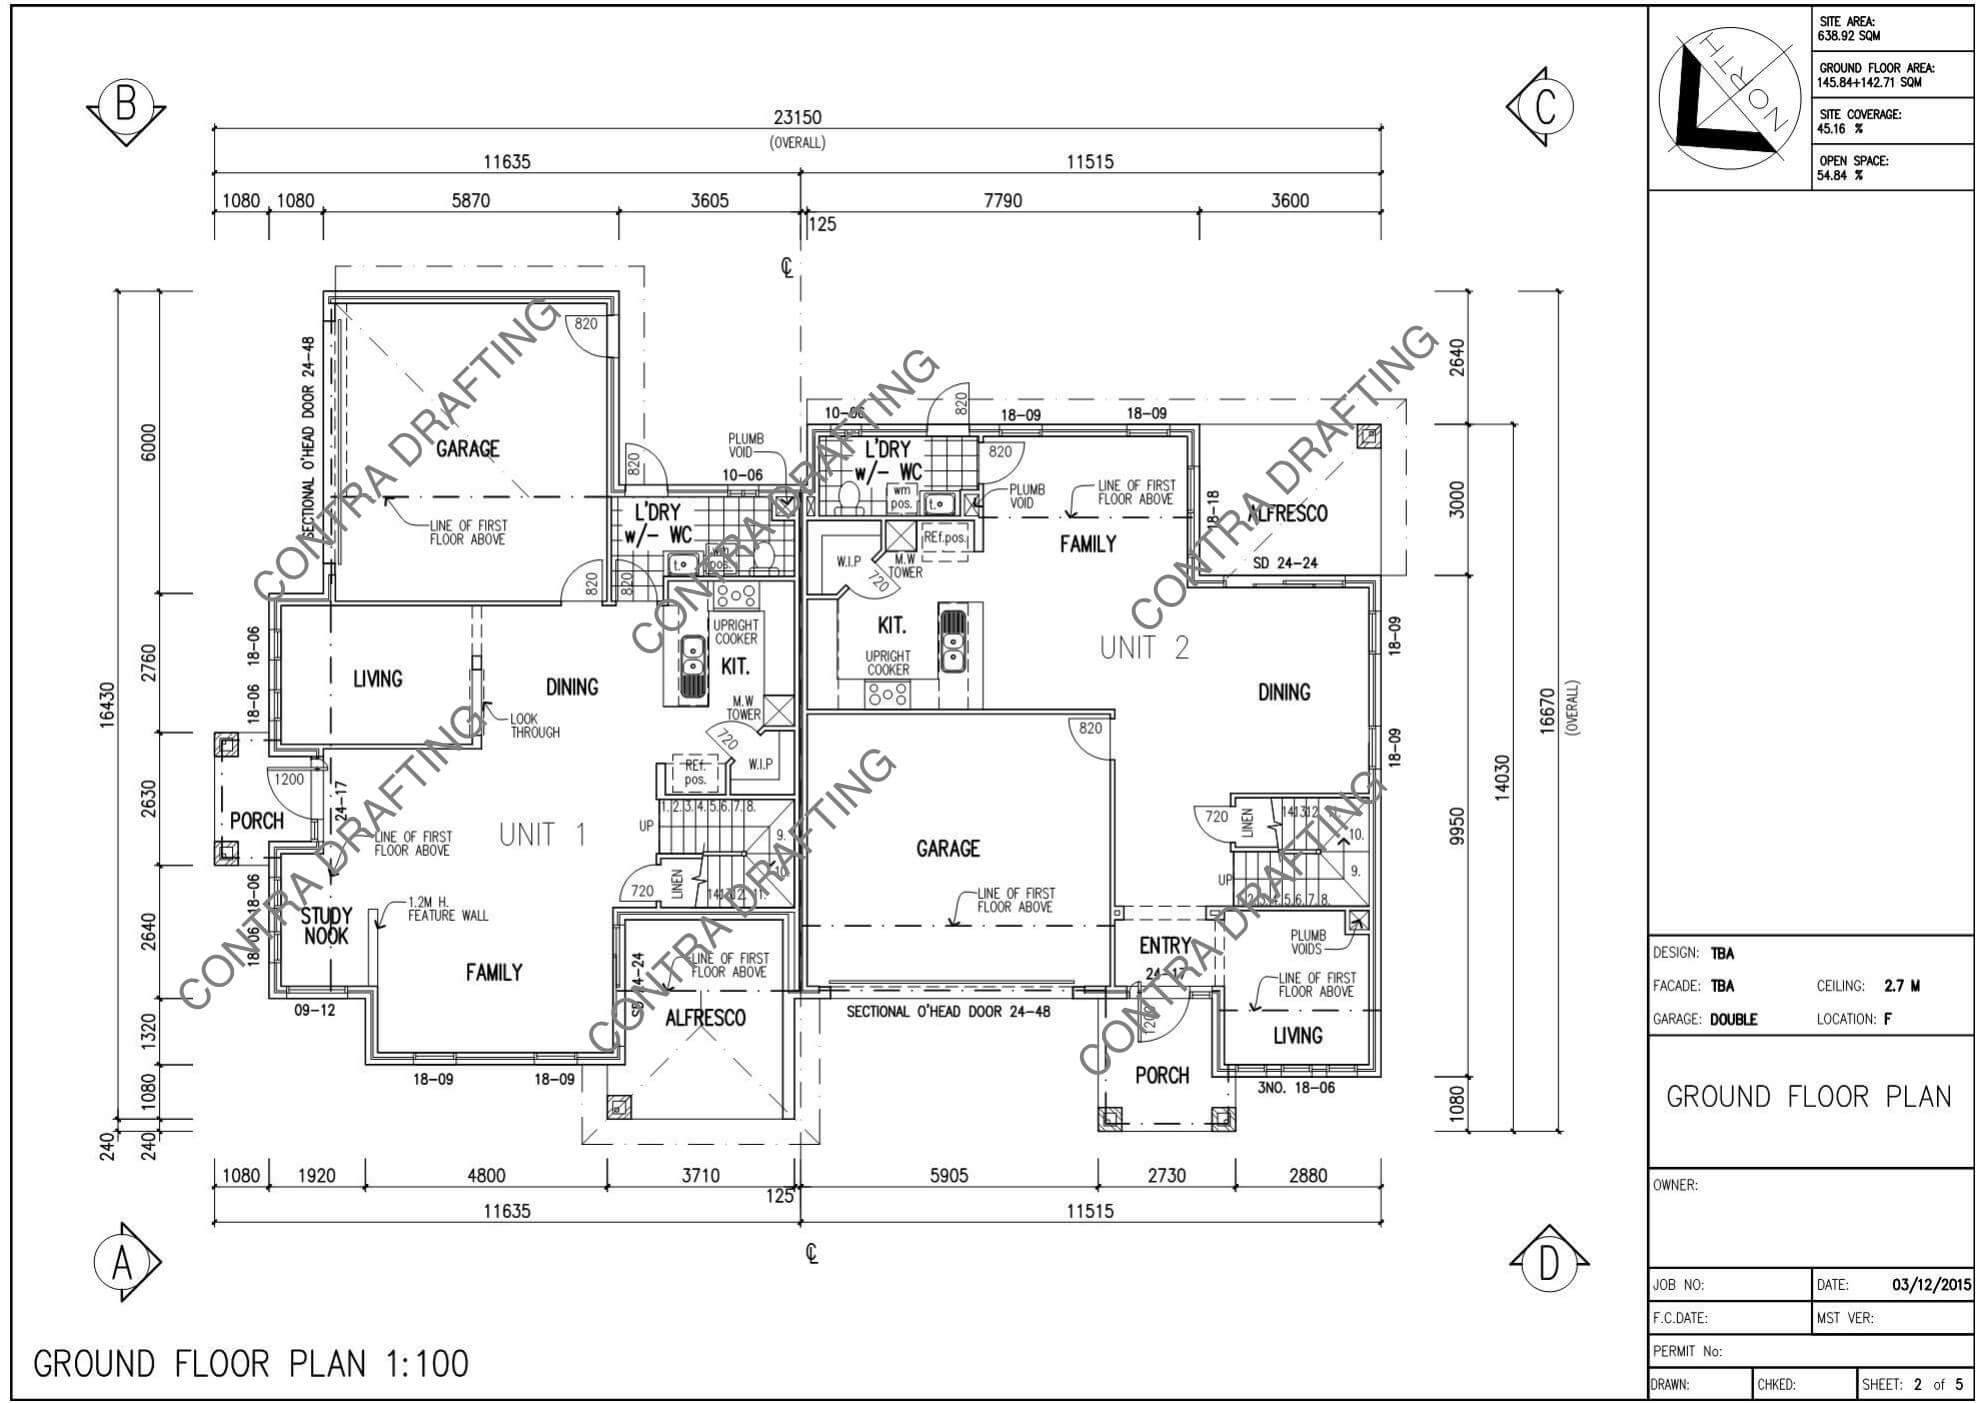 hvac drawing review wiring library Mechanical Systems Drawing architectural plans